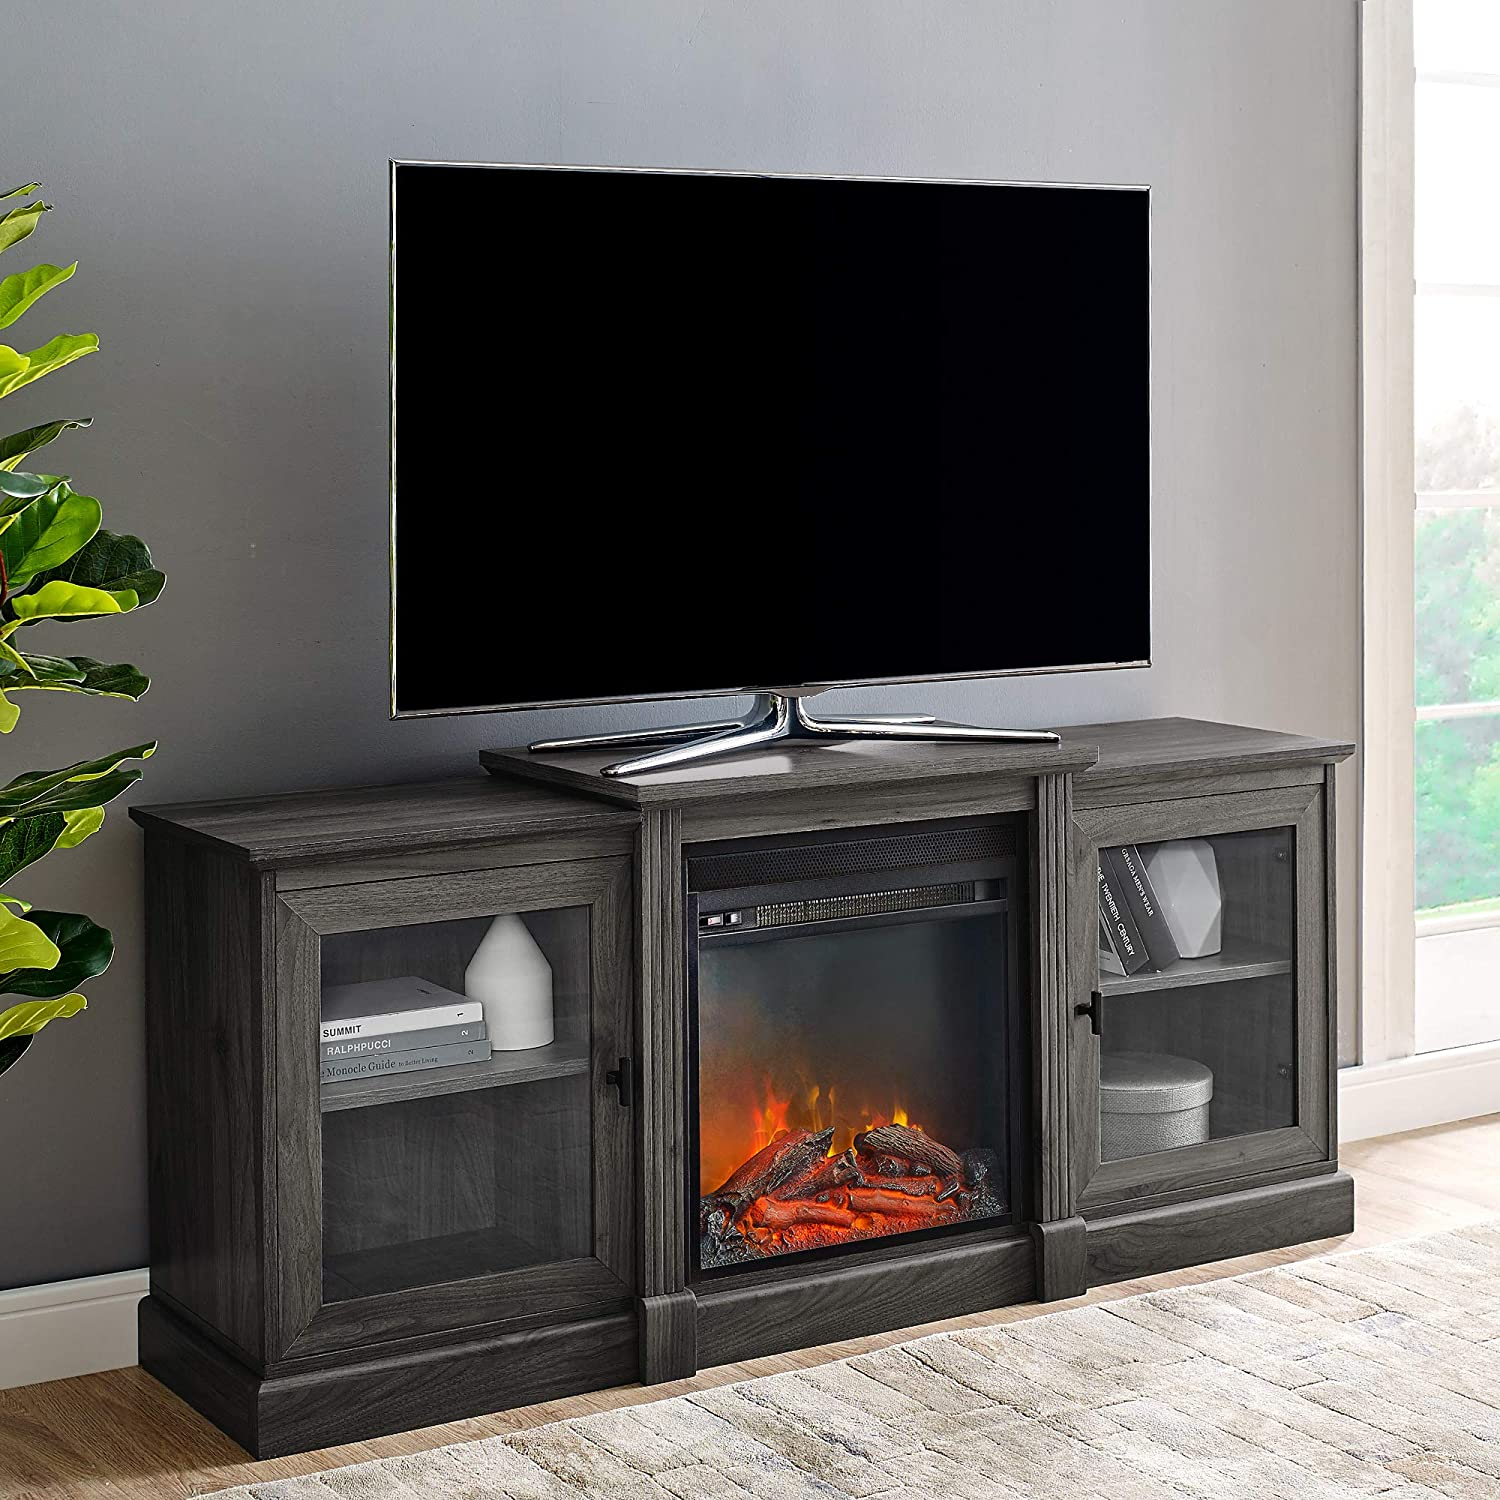 "Walker Edison Furniture Company Modern Wood Fireplace Stand with Cabinet Doors and Drawers 65"" Flat Screen Universal TV Console Living Room Storage Shelves Entertainment Center, 60 Inch, Slate Grey"